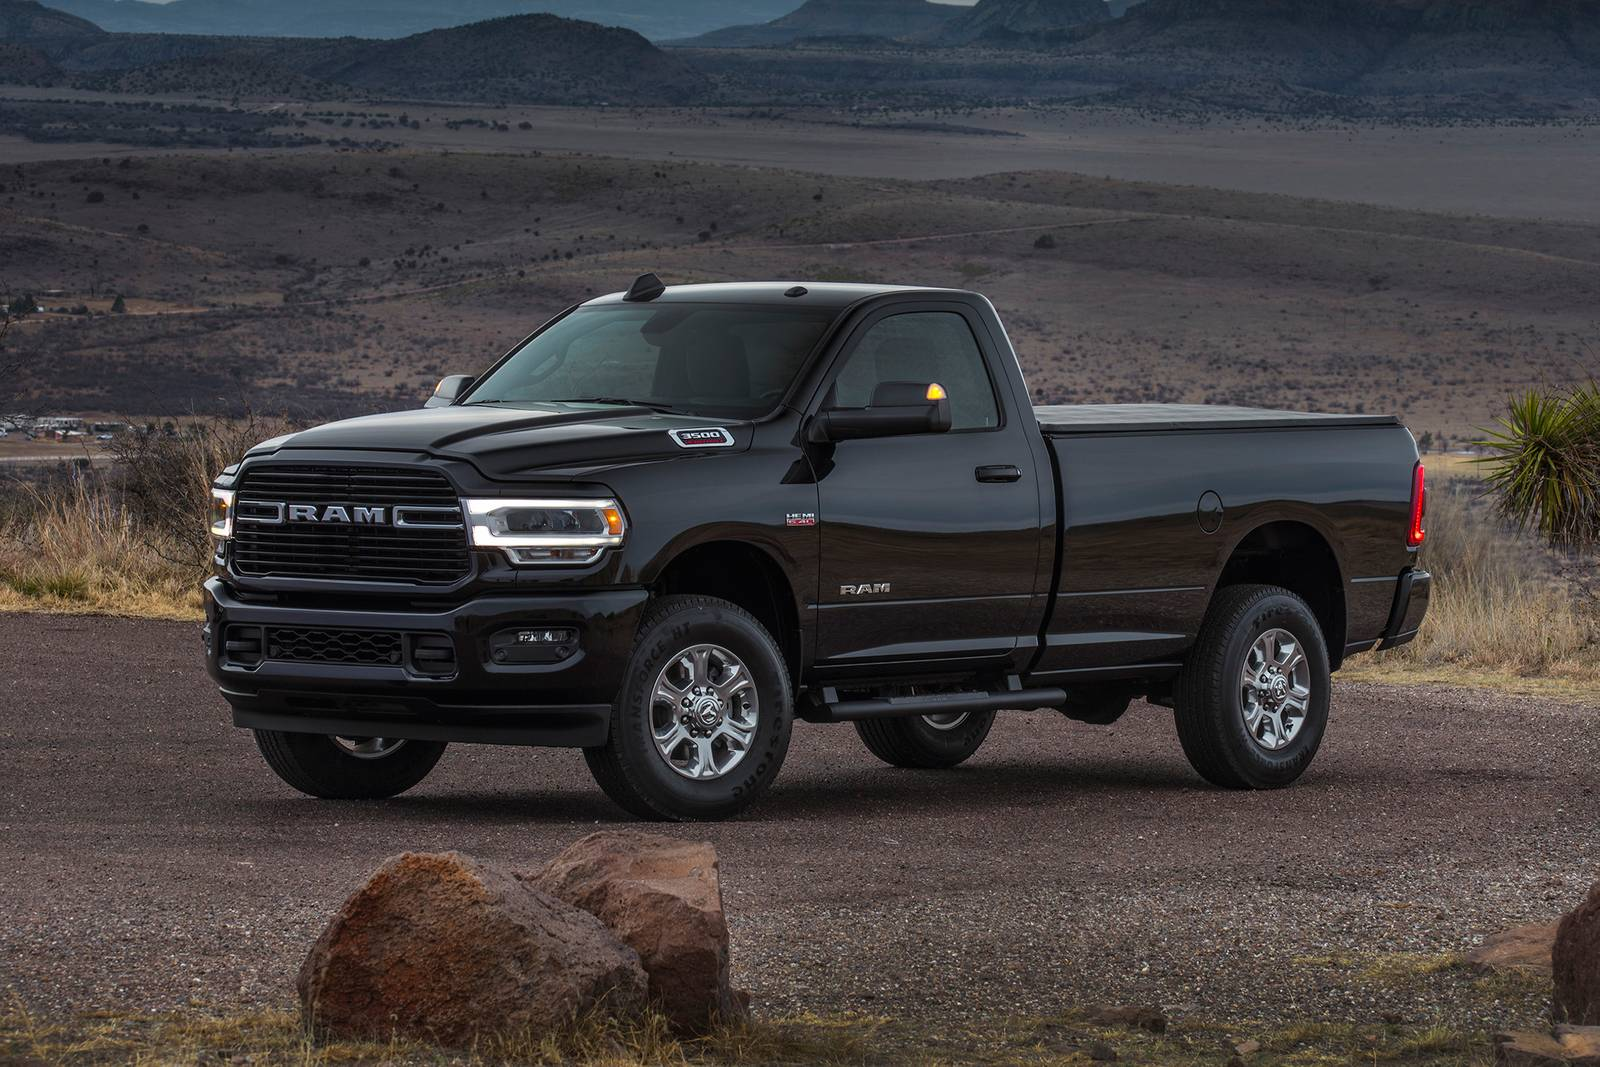 2021 Ram 2500 Regular Cab Diesel Review Price Towing Capacity Mpg Features Rivals